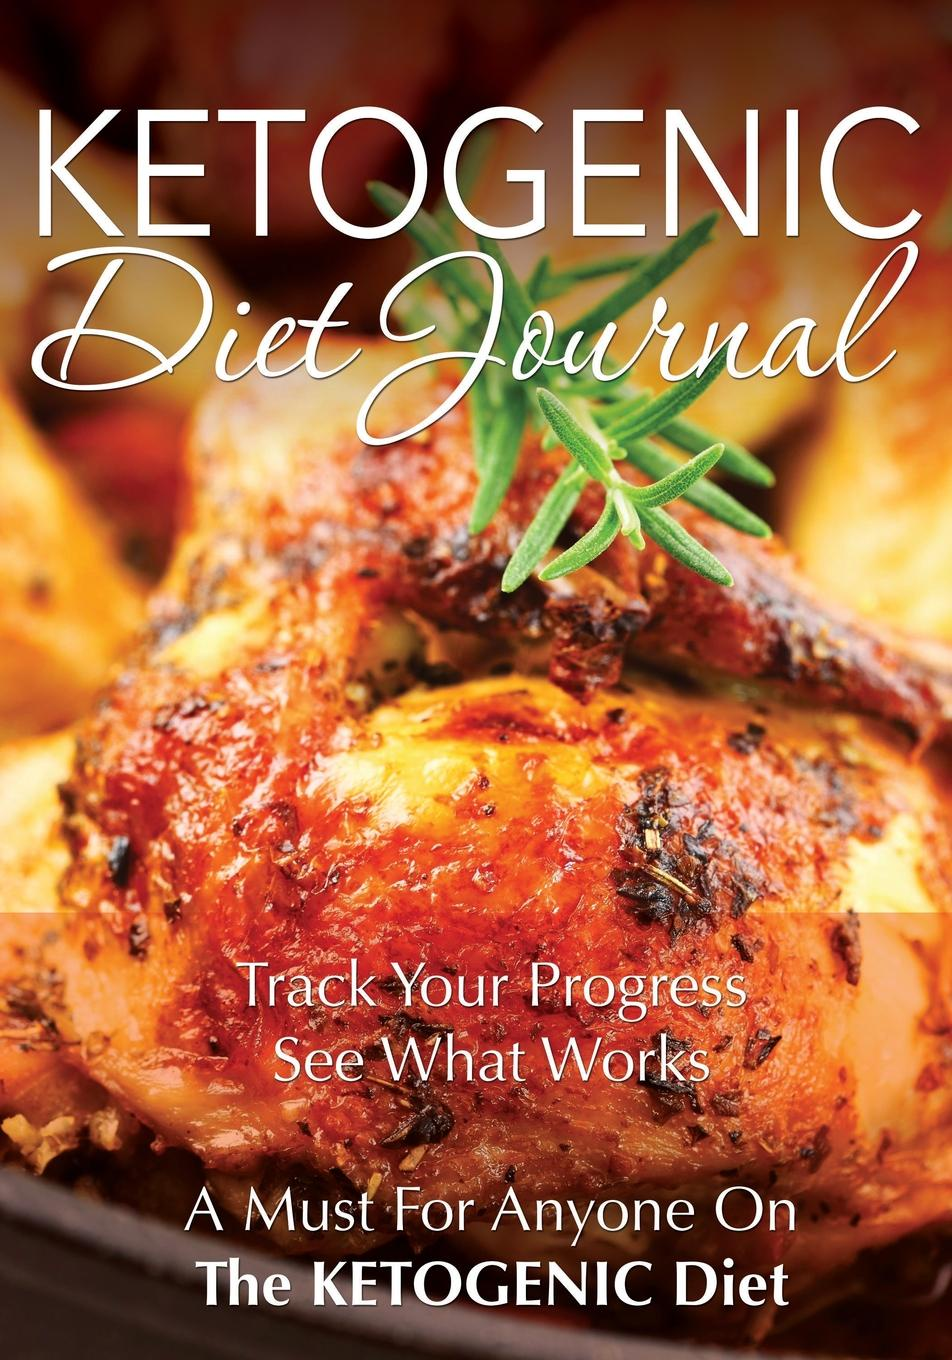 Speedy Publishing LLC Ketogenic Diet Journal. Track Your Progress See What Works: A Must for Anyone on the Ketogenic Diet